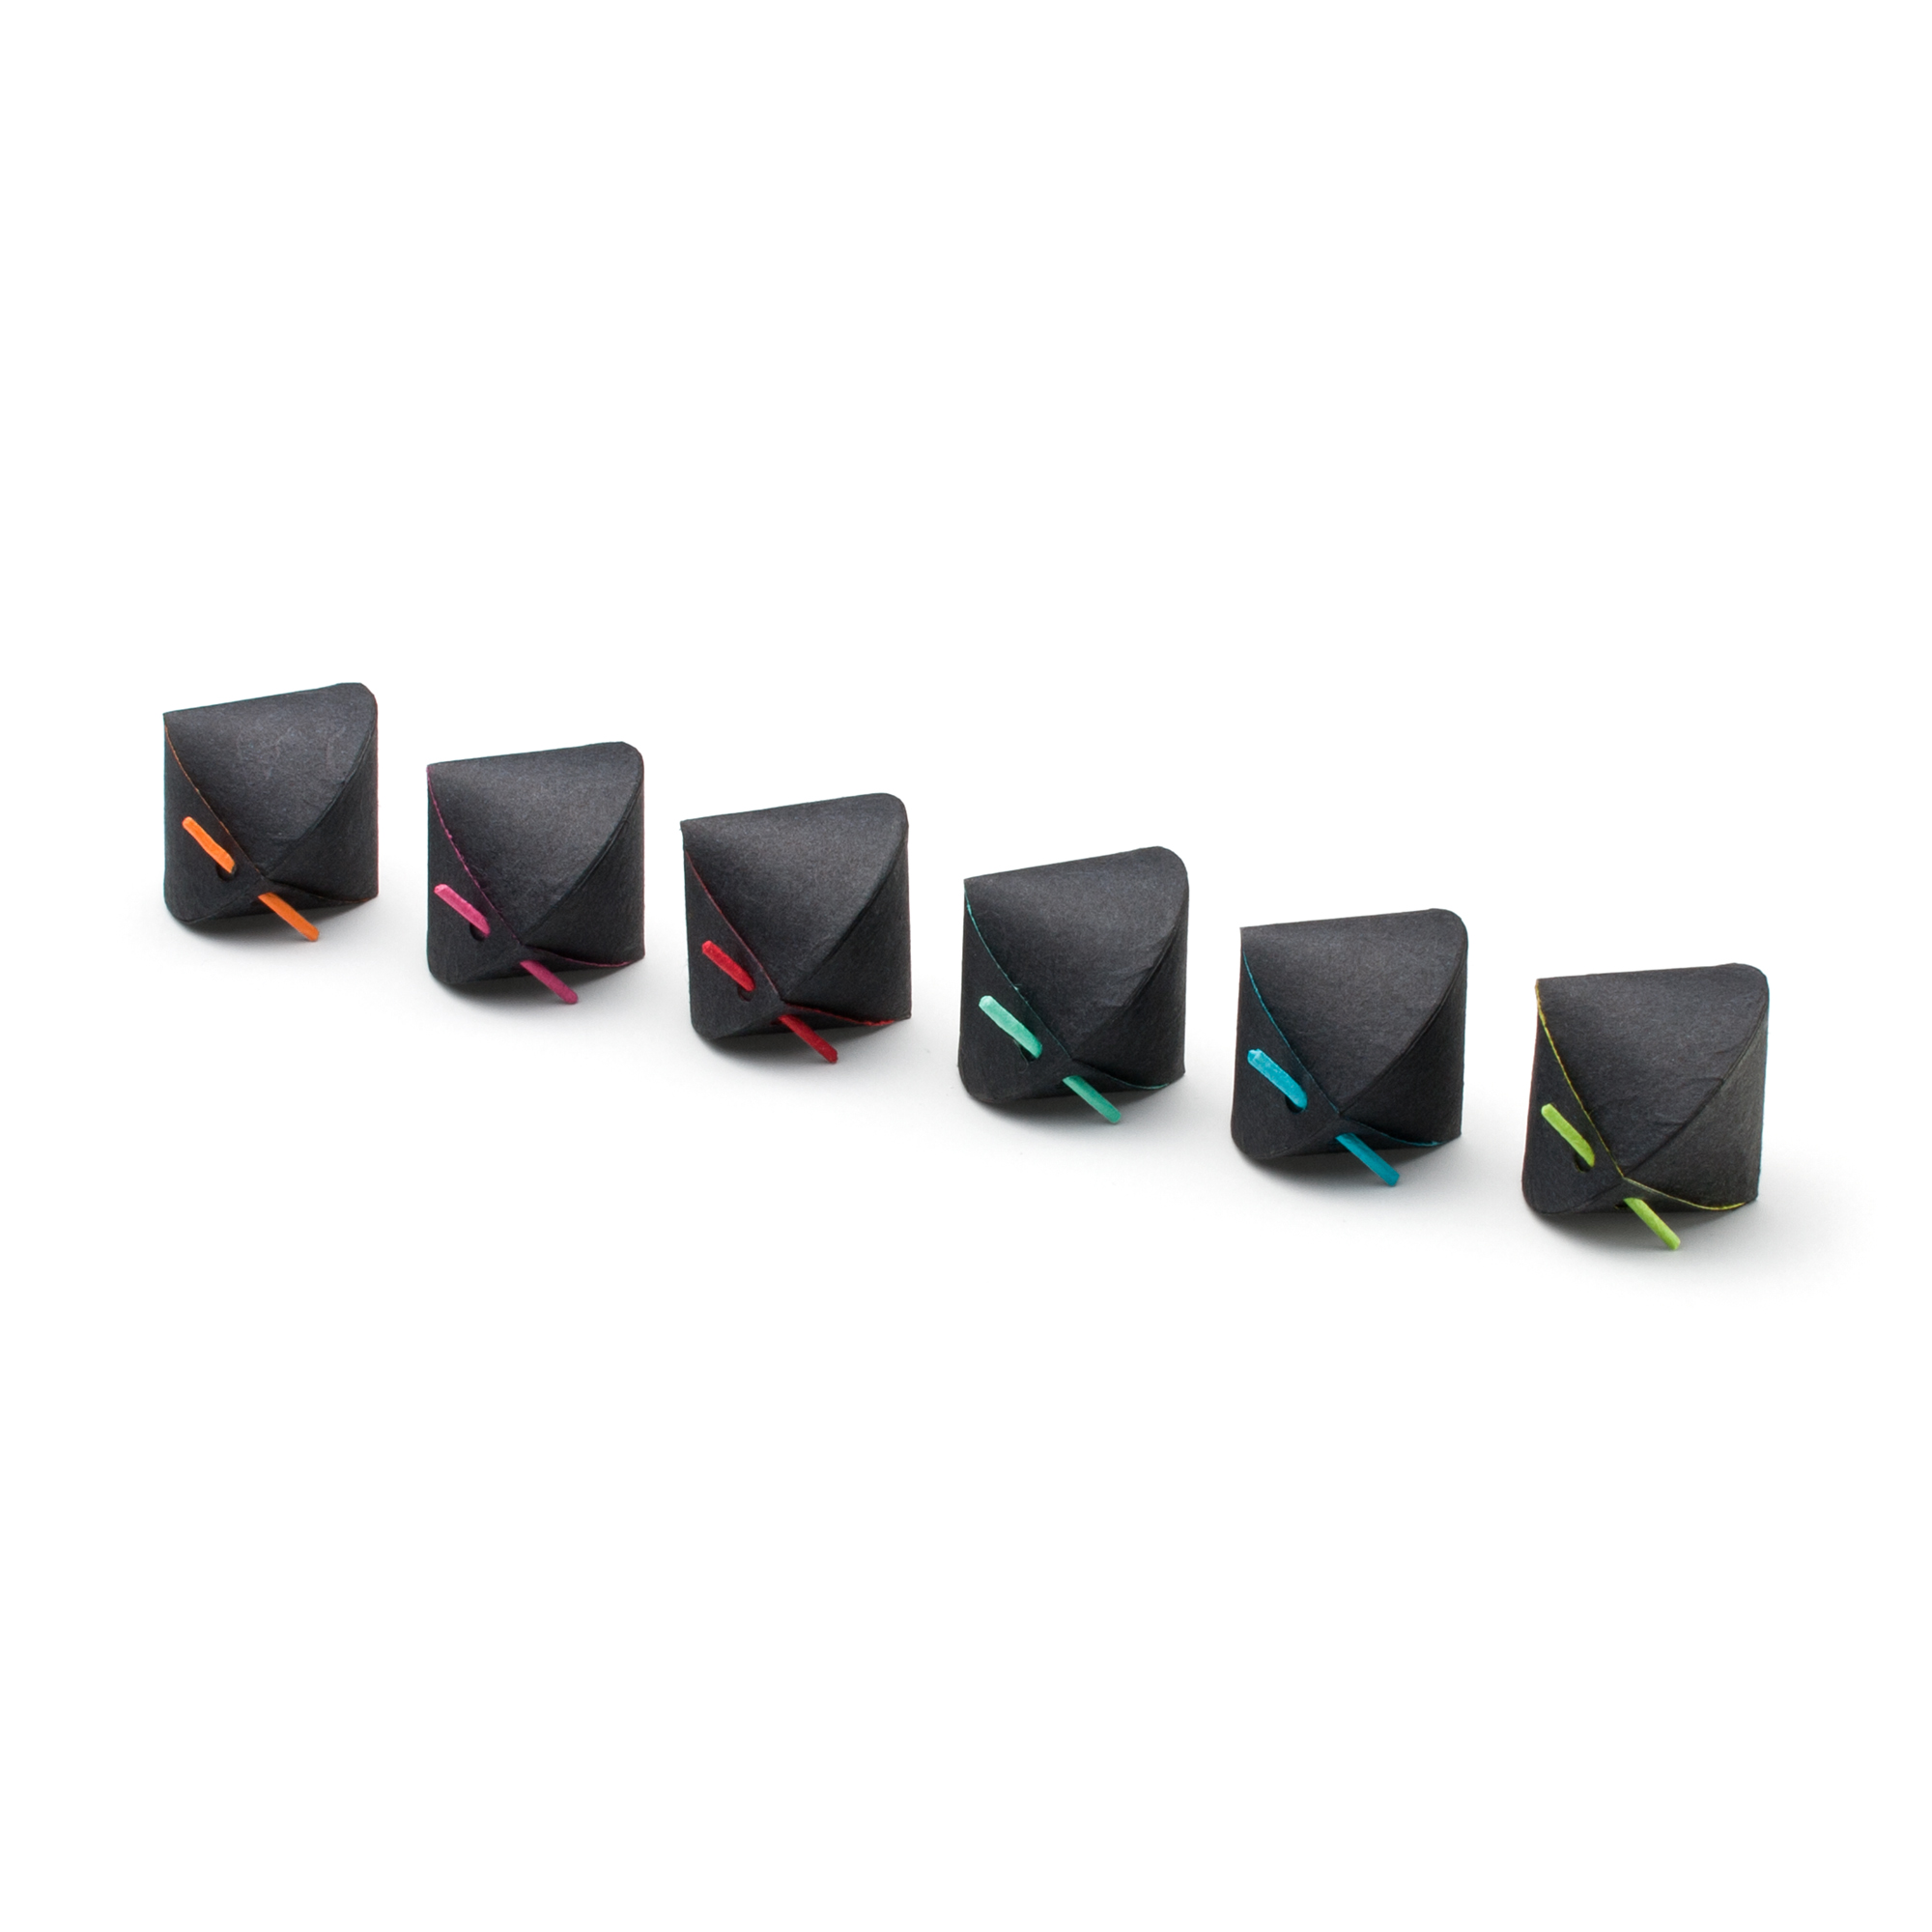 PACBOX small black-assorted colours